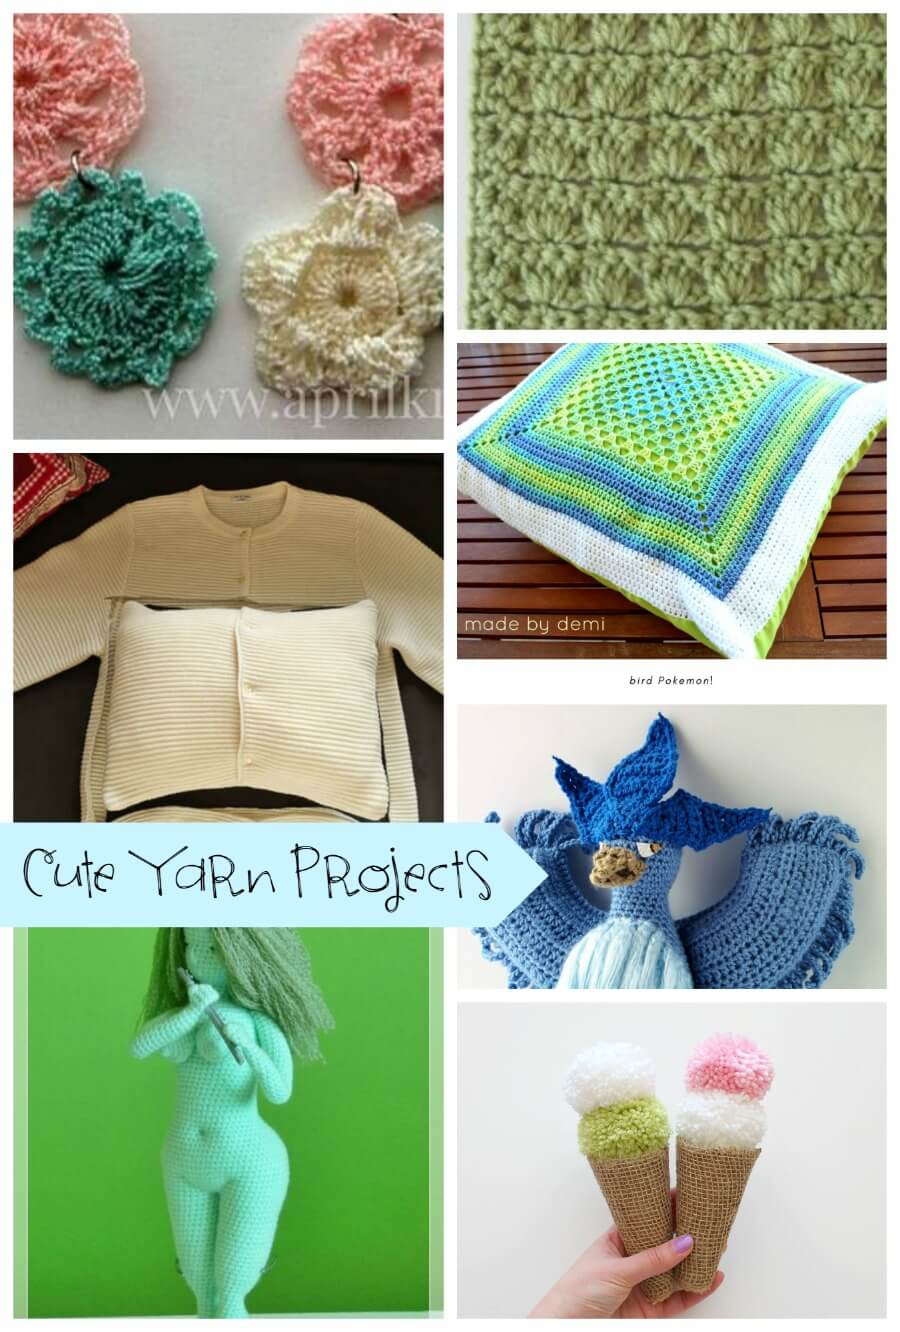 Cute Yarn Projects features from Life Sew Savory